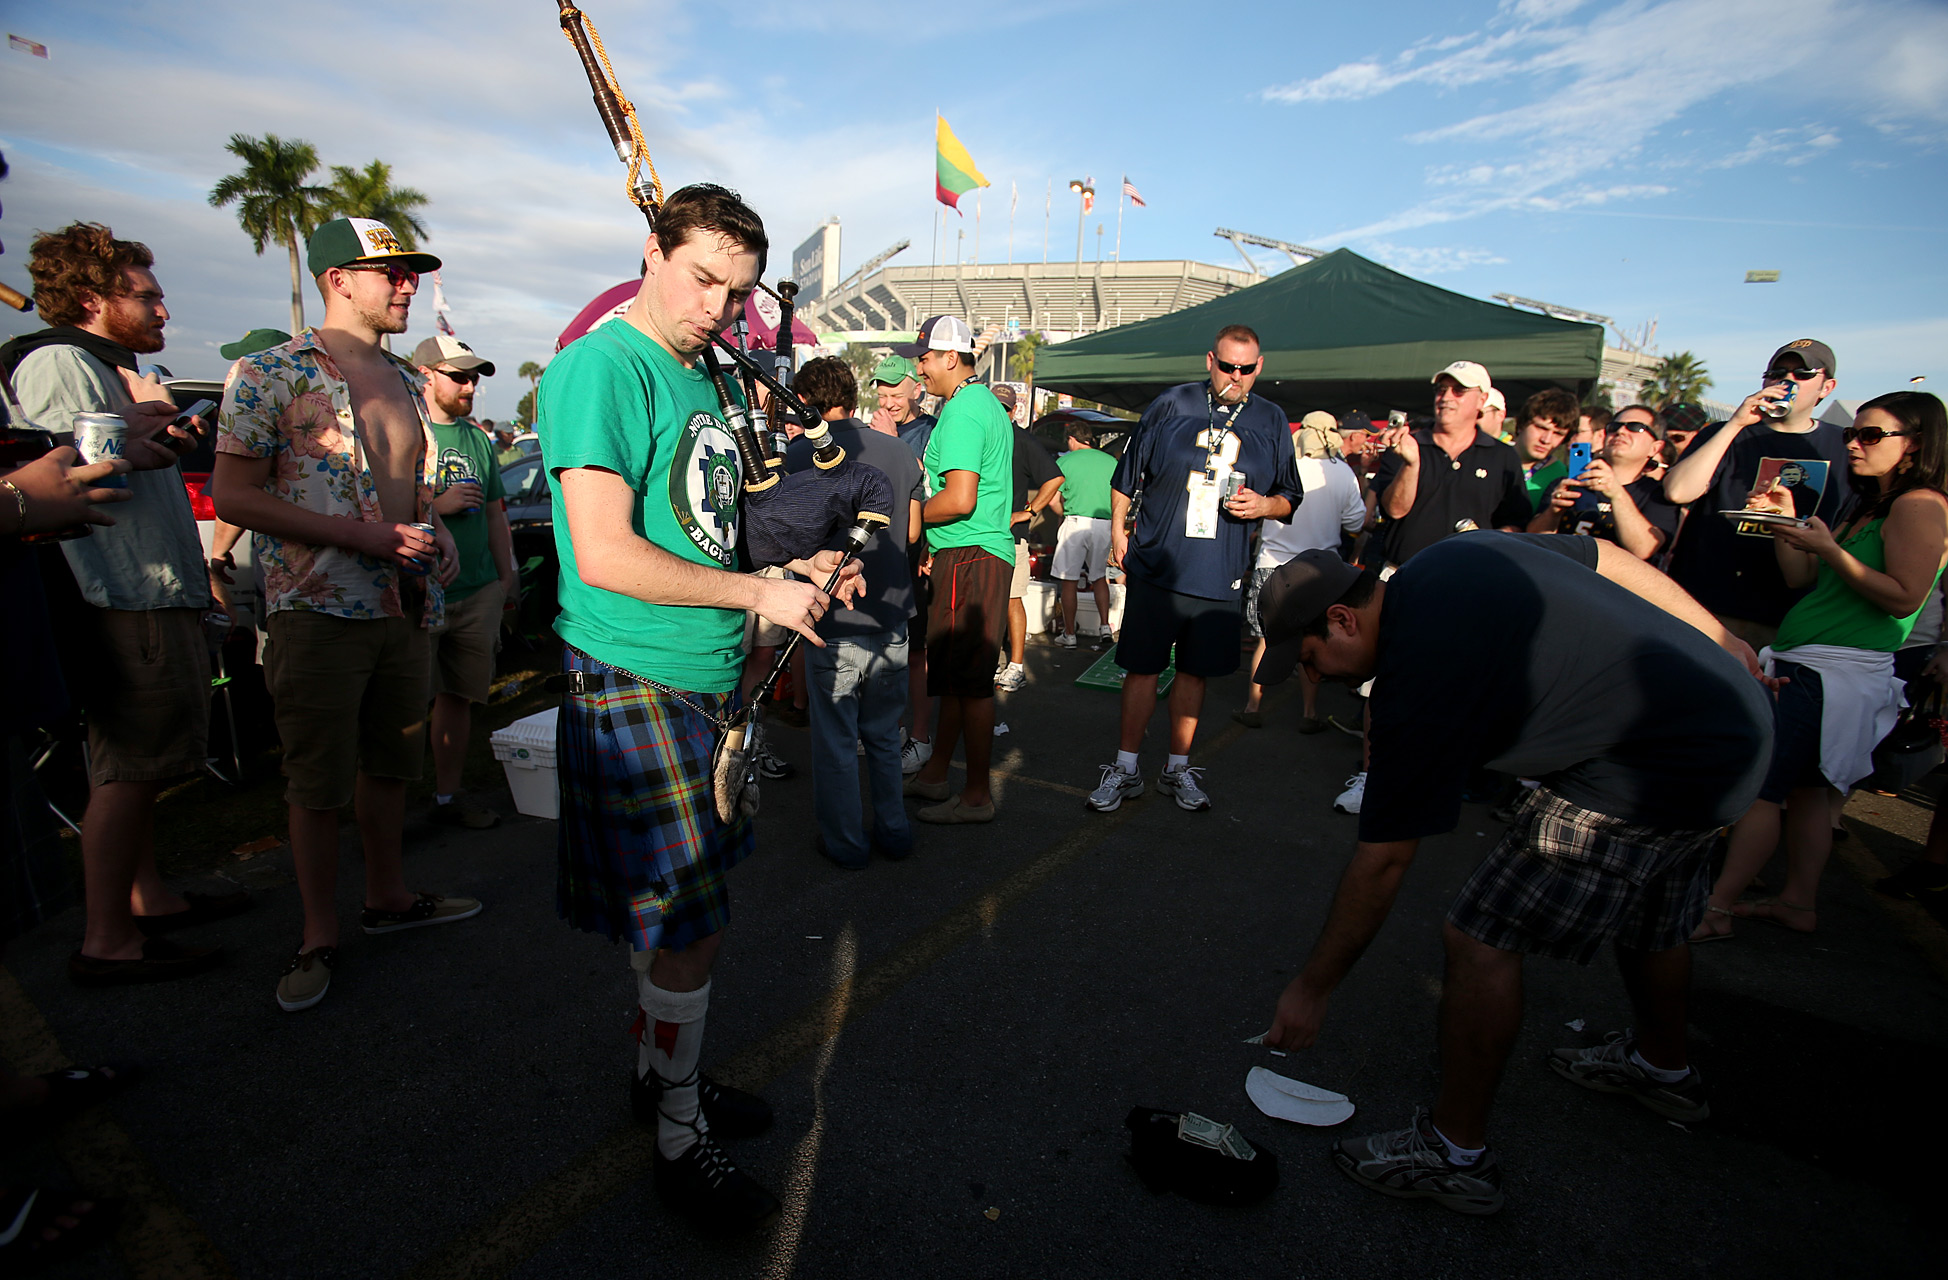 Fan with Bagpipe